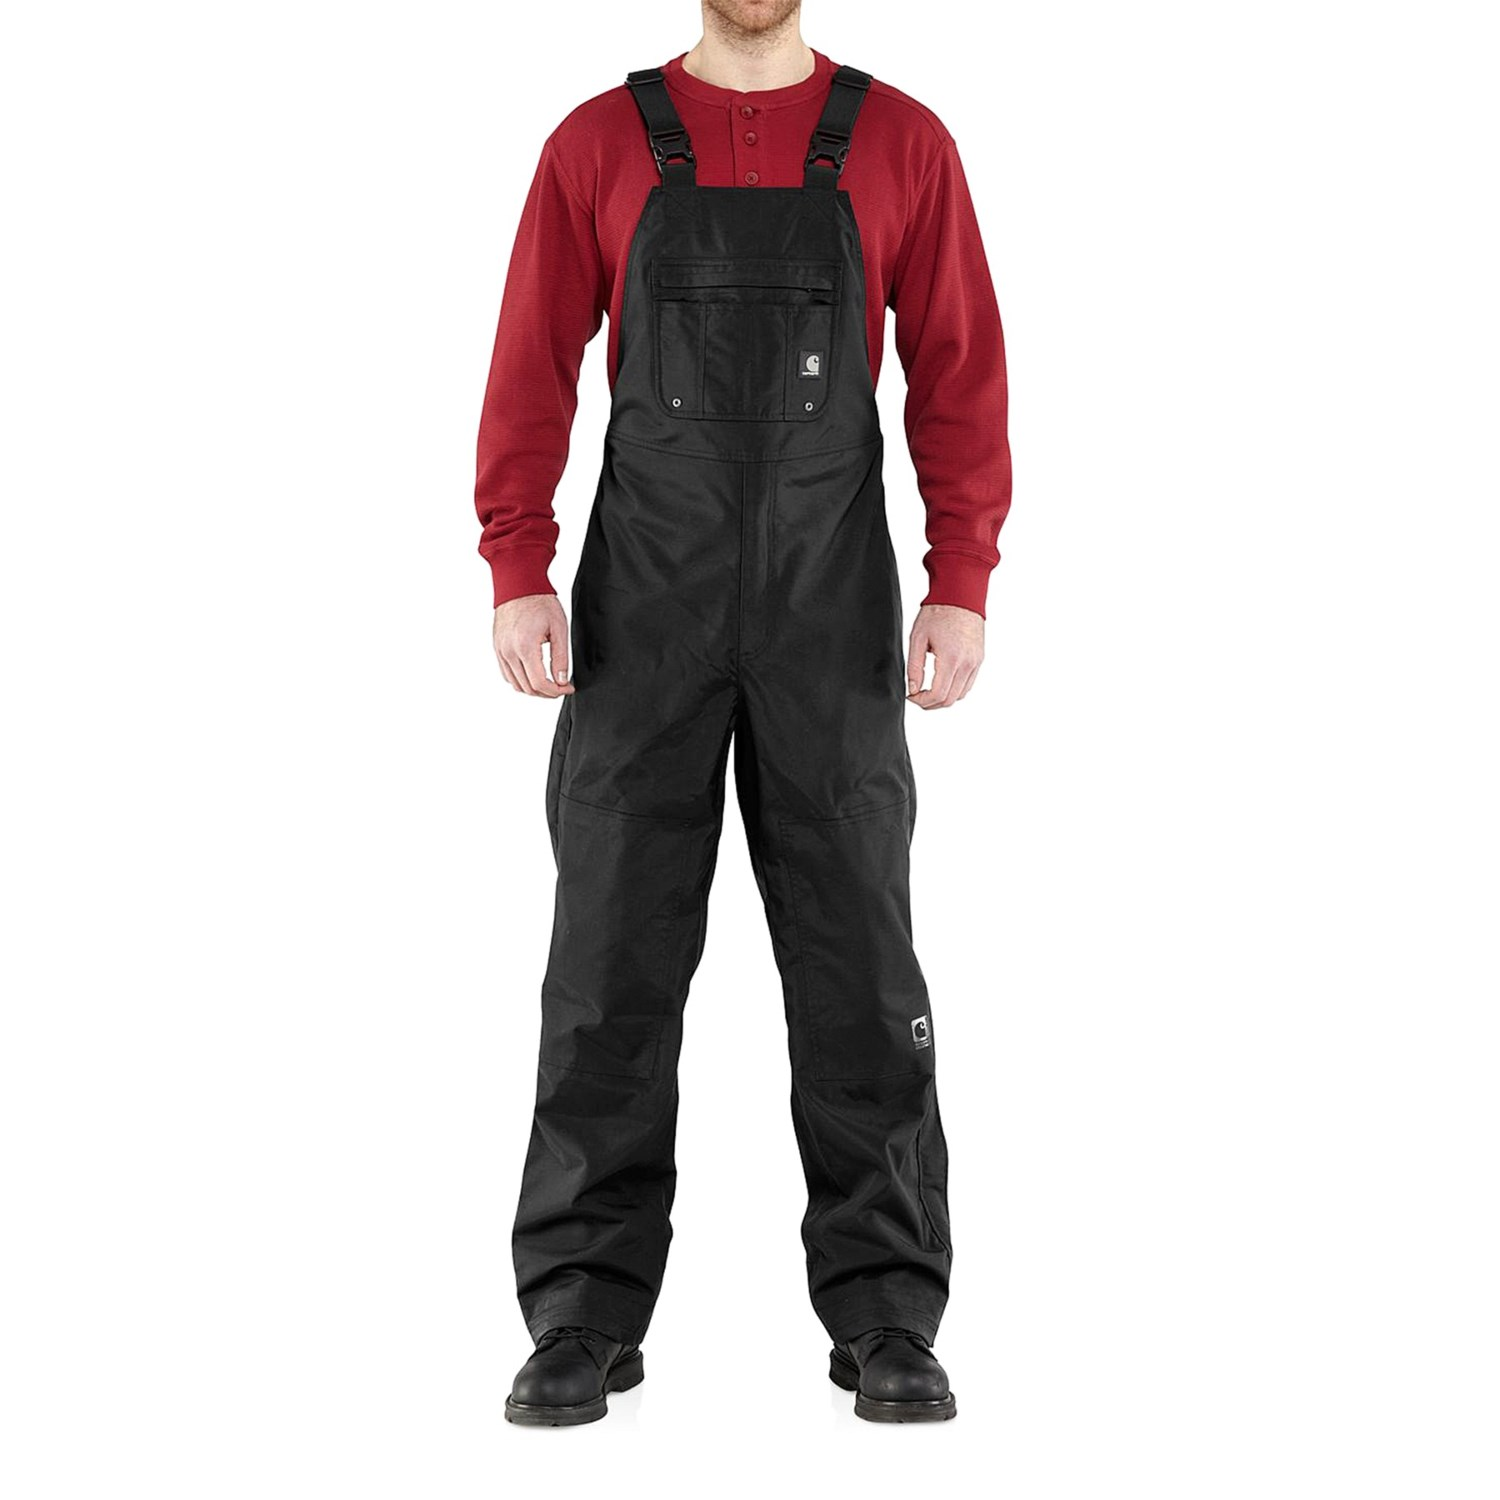 Find great deals on eBay for mens big and tall overalls. Shop with confidence.